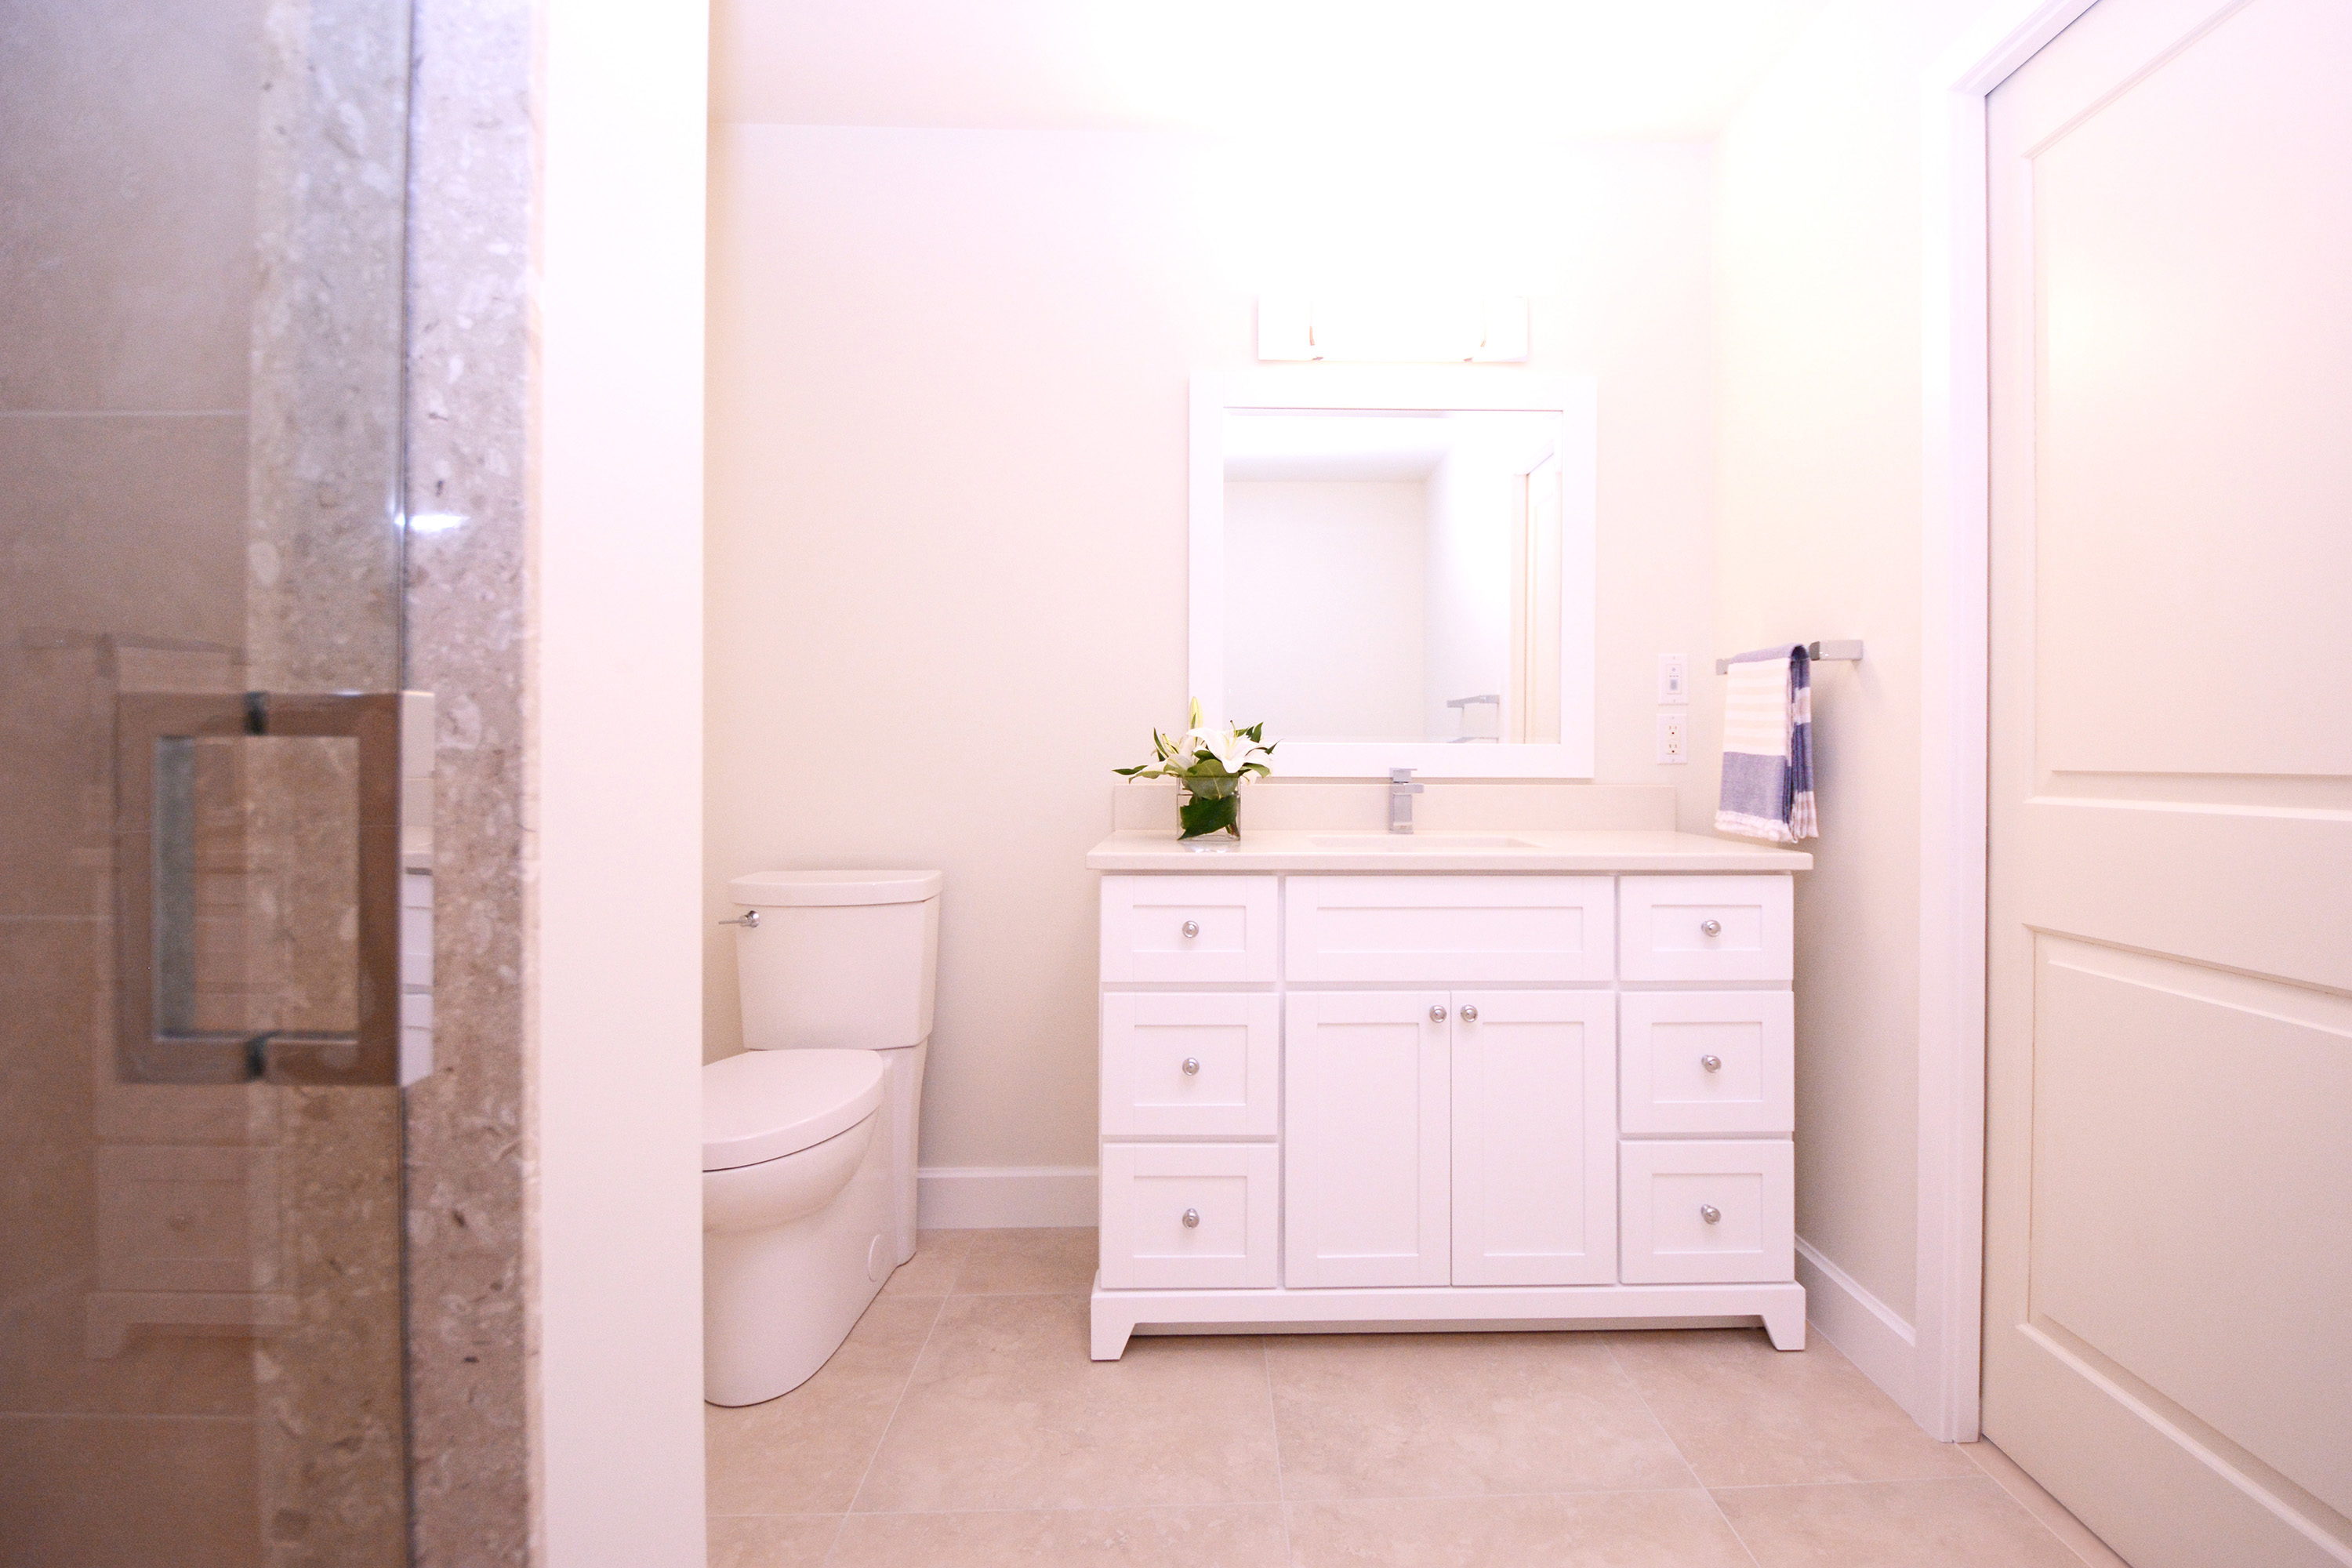 Waterfront Rental Unit Bath - Design & Construction of Inspired Spaces